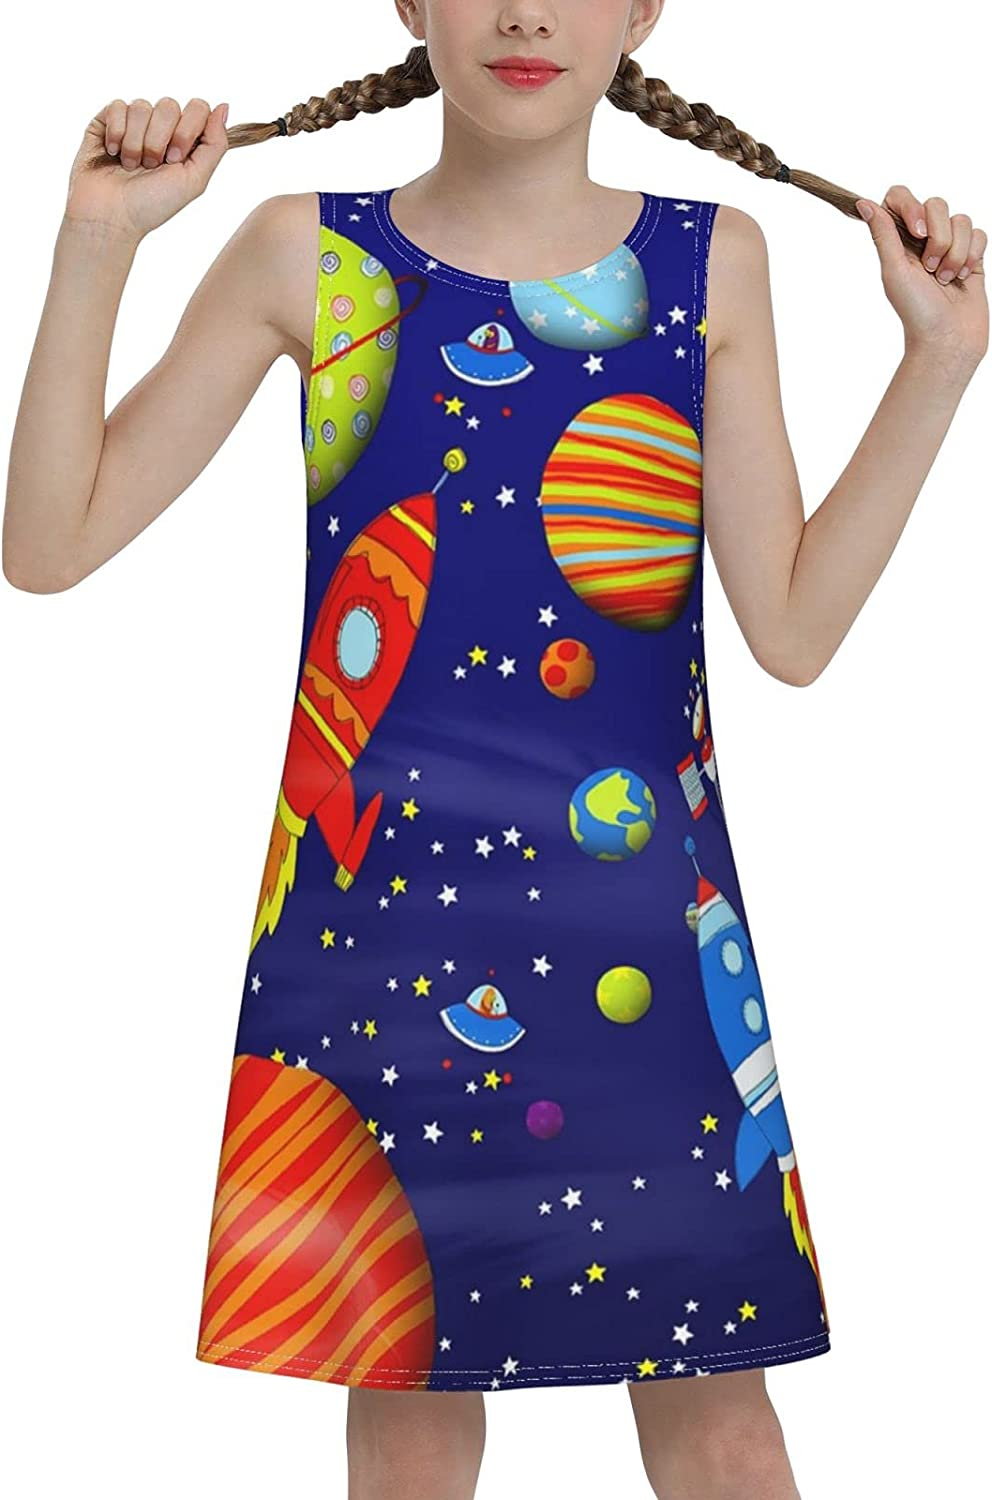 YhrYUGFgf Rockets and Universe Sleeveless Dress for Girls Casual Printed Vest Skirt